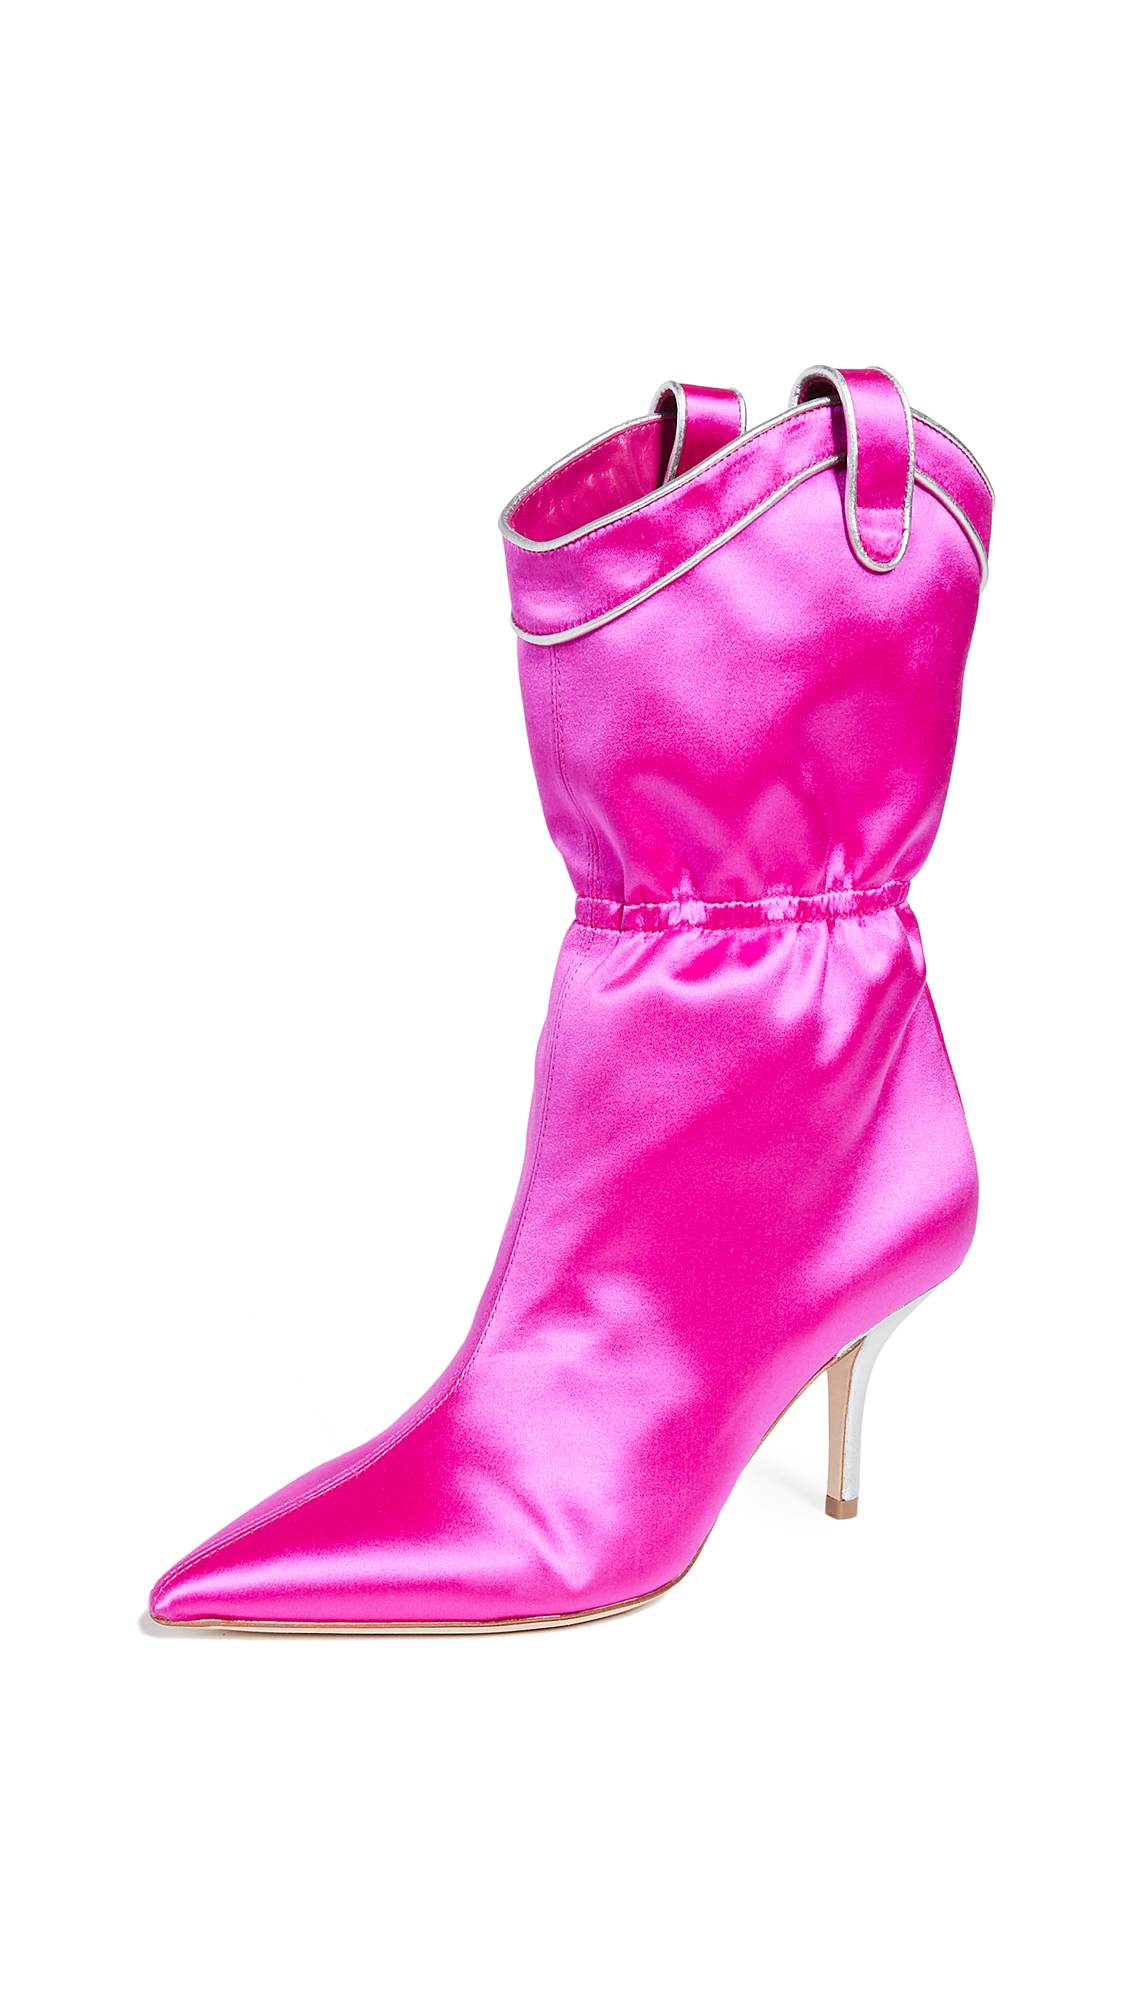 Malone Souliers by Roy Luwolt Daisy Boots - Fuchsia/Silver